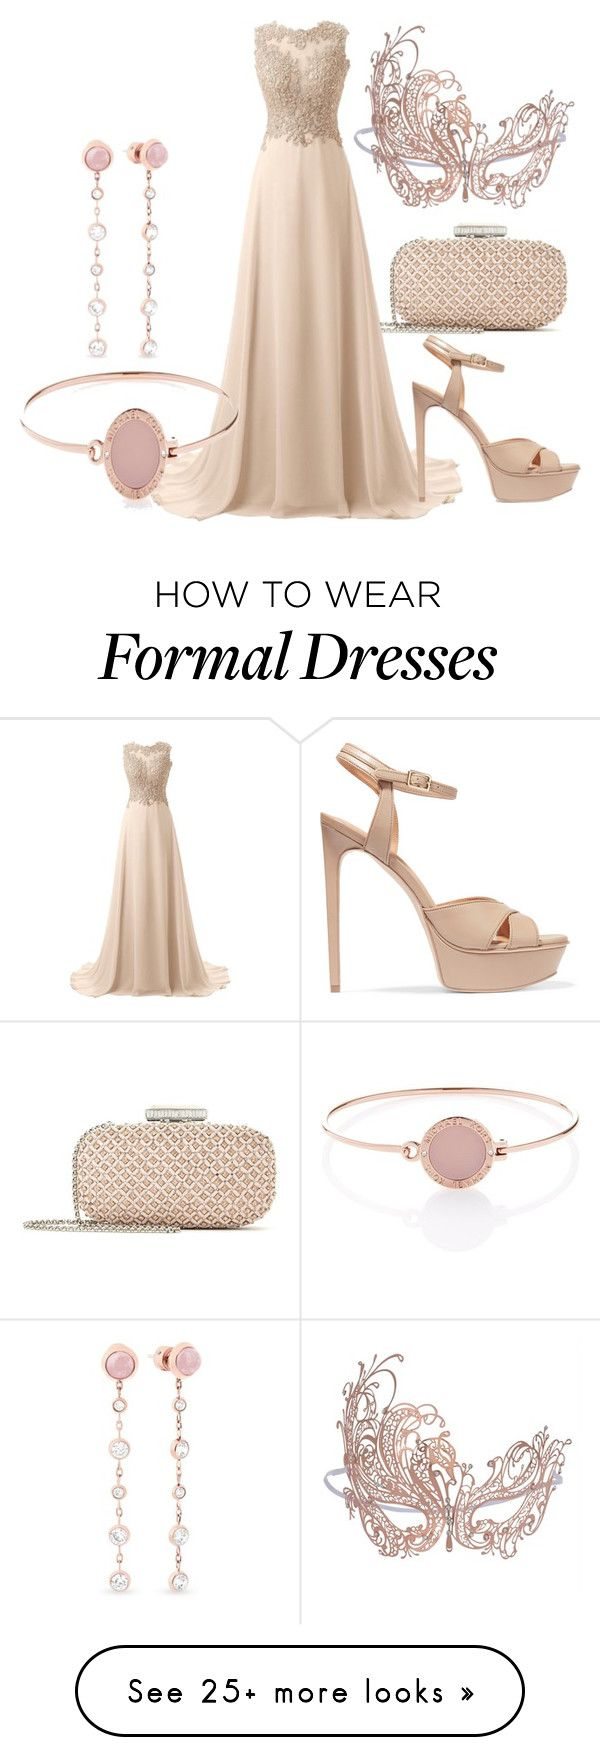 """Ball Masquerade"" by solemnium on Polyvore featuring Oscar de la Renta, Halston Heritage and Michael Kors"